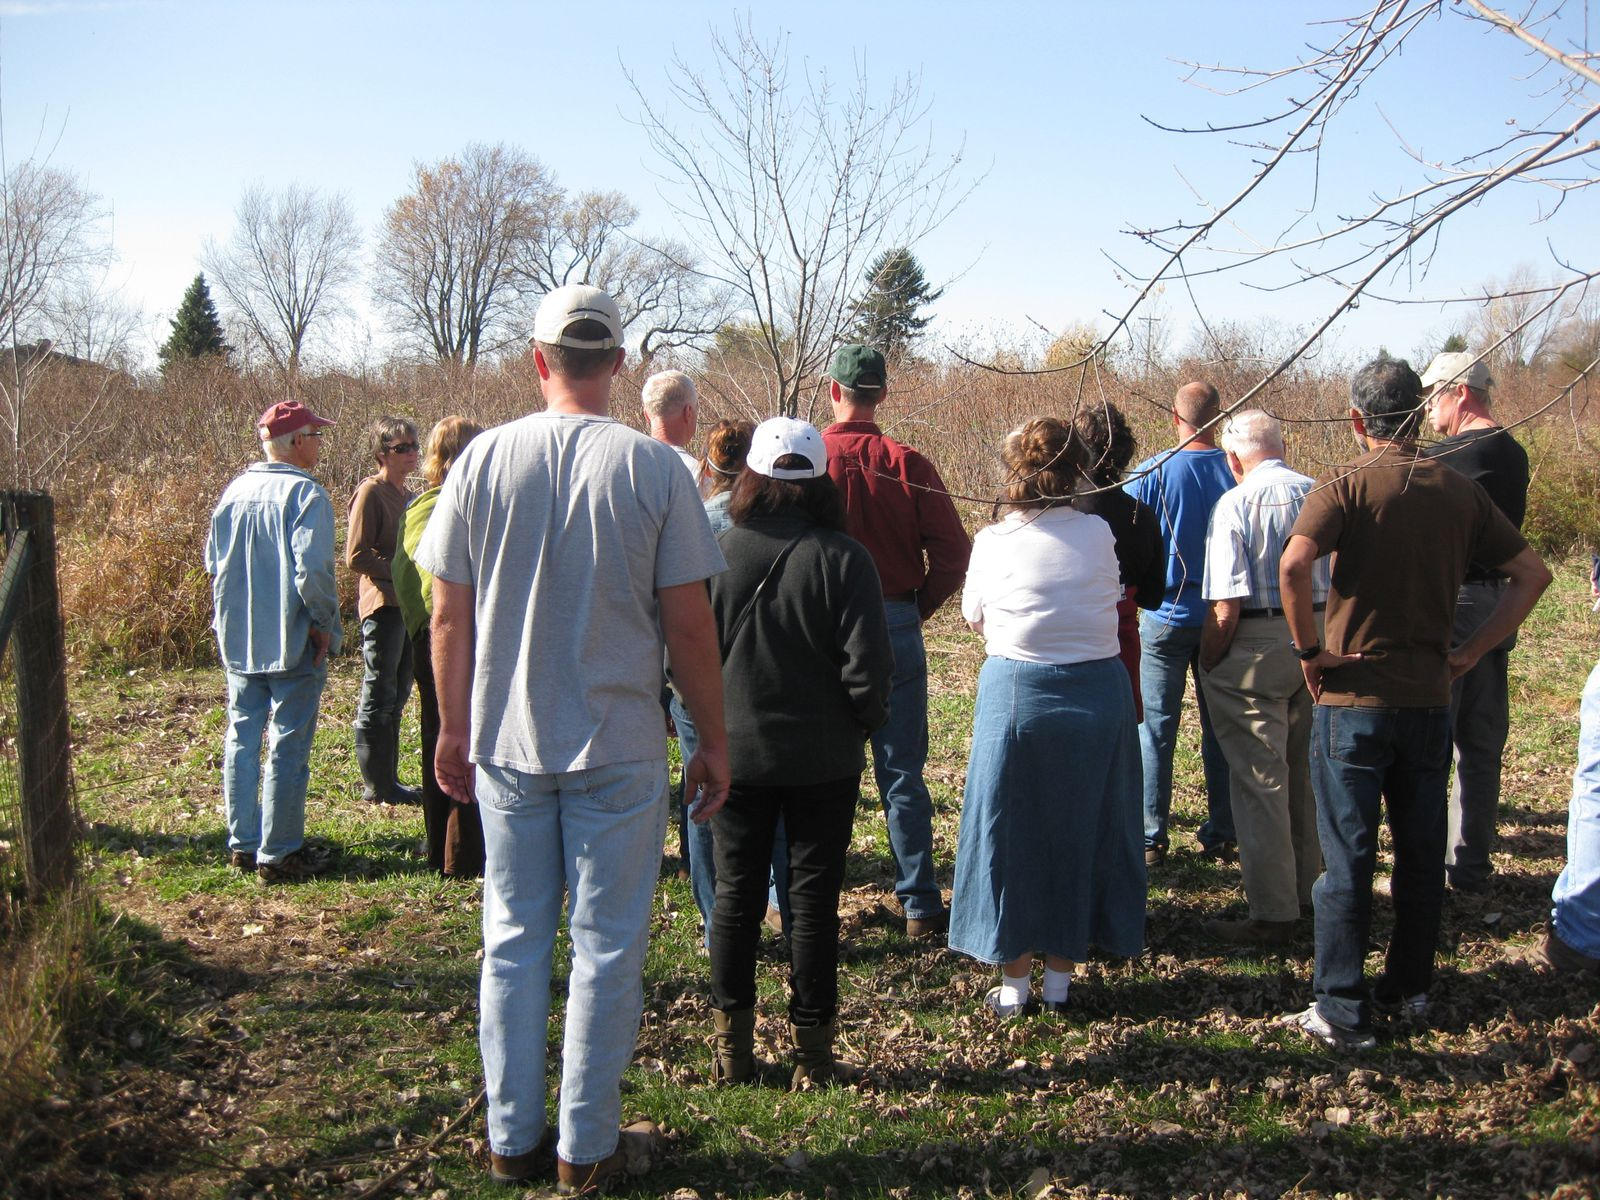 Sharon and Dennis Lang graciously opened their 70 acre home to our group's tour. They are knowledgeable in many areas of homesteading and stewarding the land.